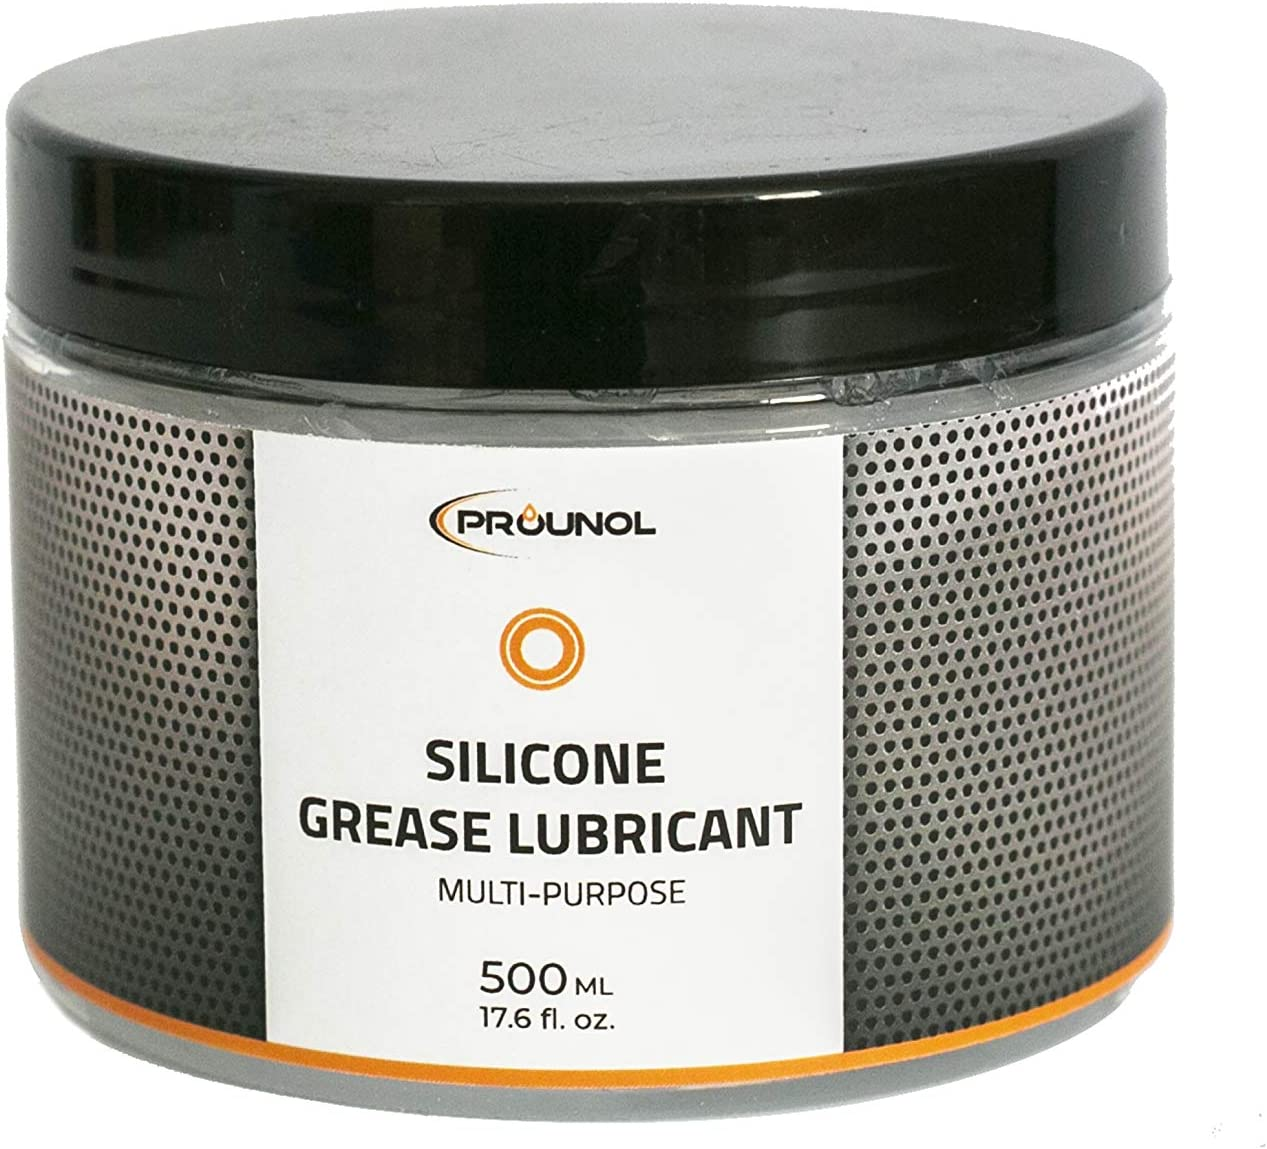 PROUNOL 100% Silicone Grease, General-Purpose Dielectric Paste, Waterproof HT Rubber Grease - 500ml